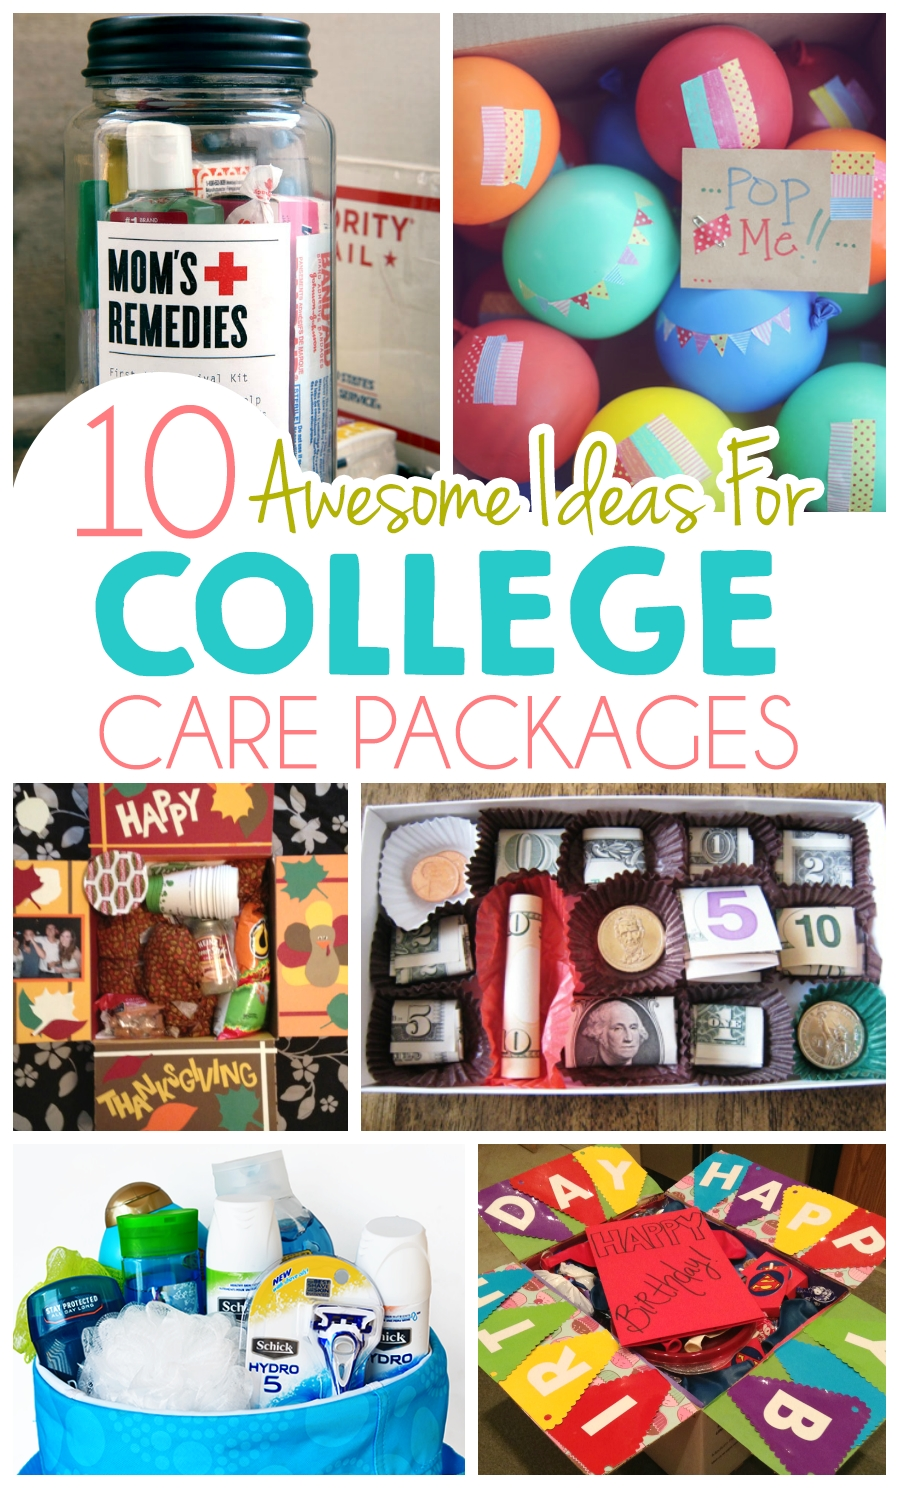 10 Wonderful Ideas For A Care Package 10 ideas for college care packages college ads and gift 4 2021